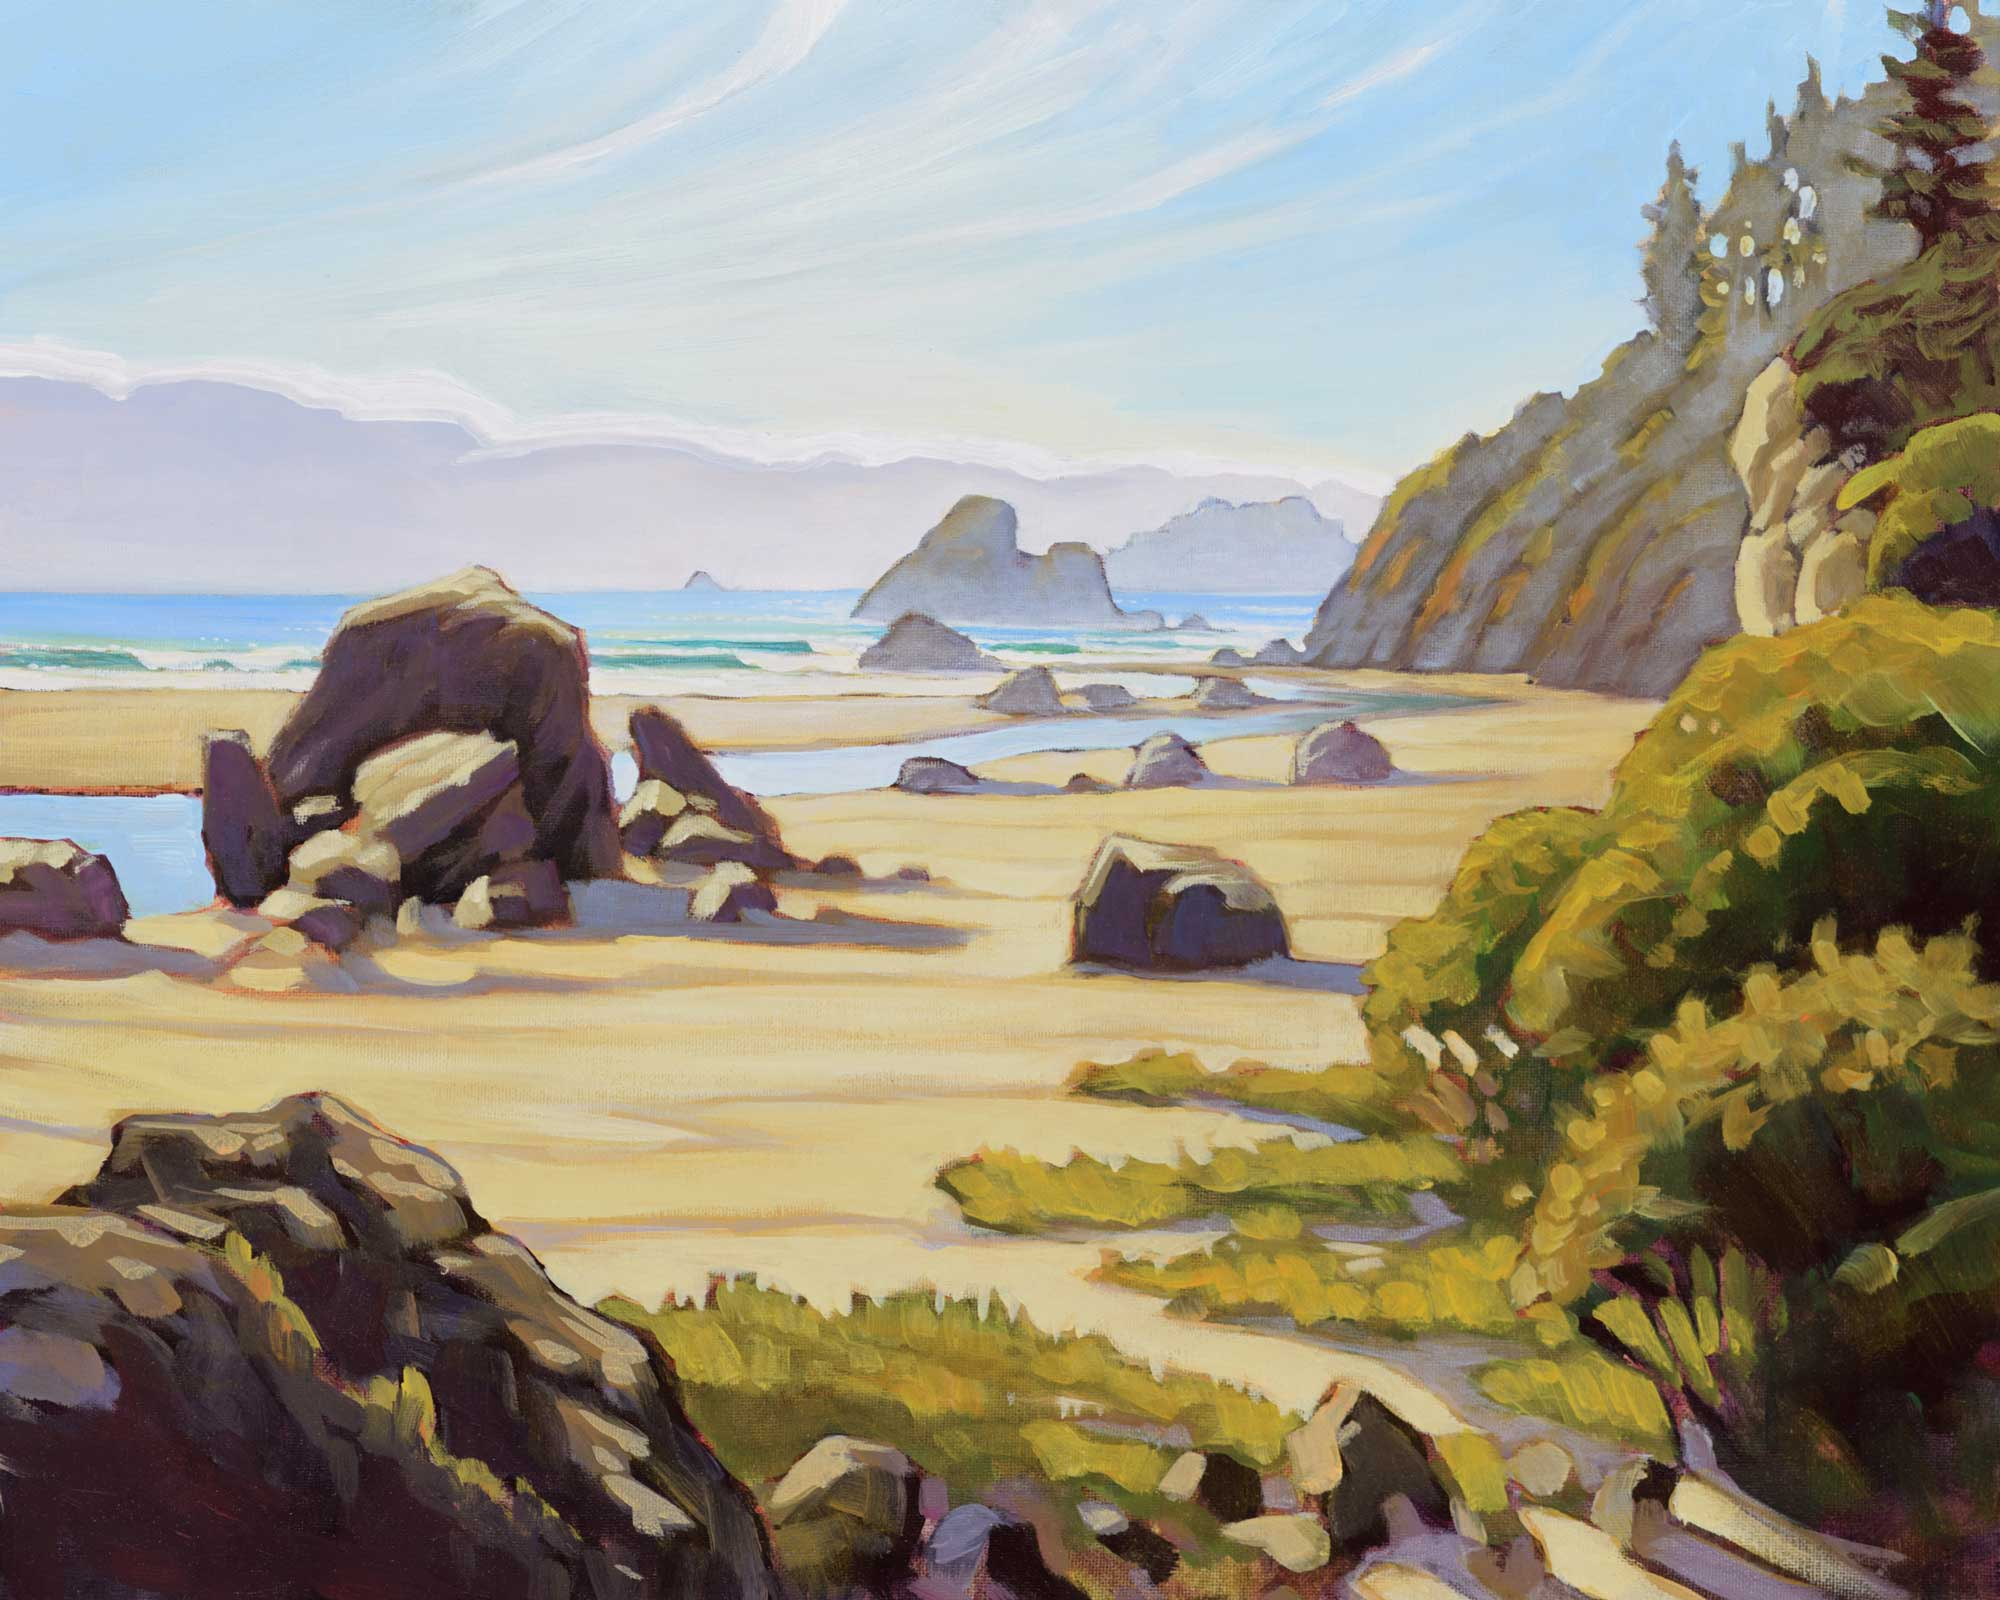 A plein air artwork painting of Moonstone Beach on the Trinidad coast of Humboldt County in northern California